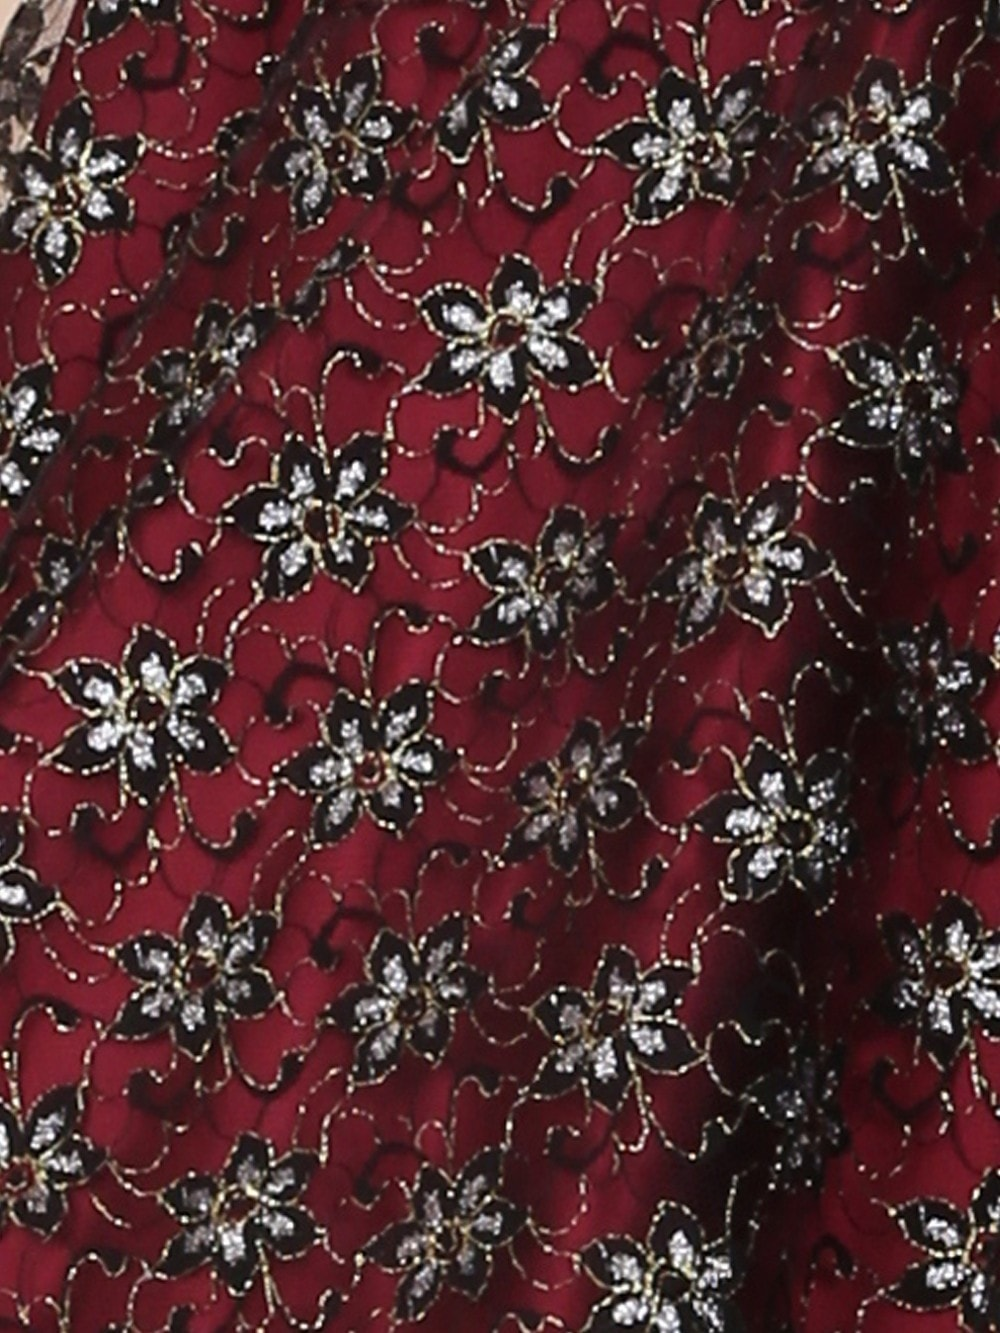 16a884af5 Halterneck Top Luxury Burgundy with Black Silver Lace from Vivien of ...